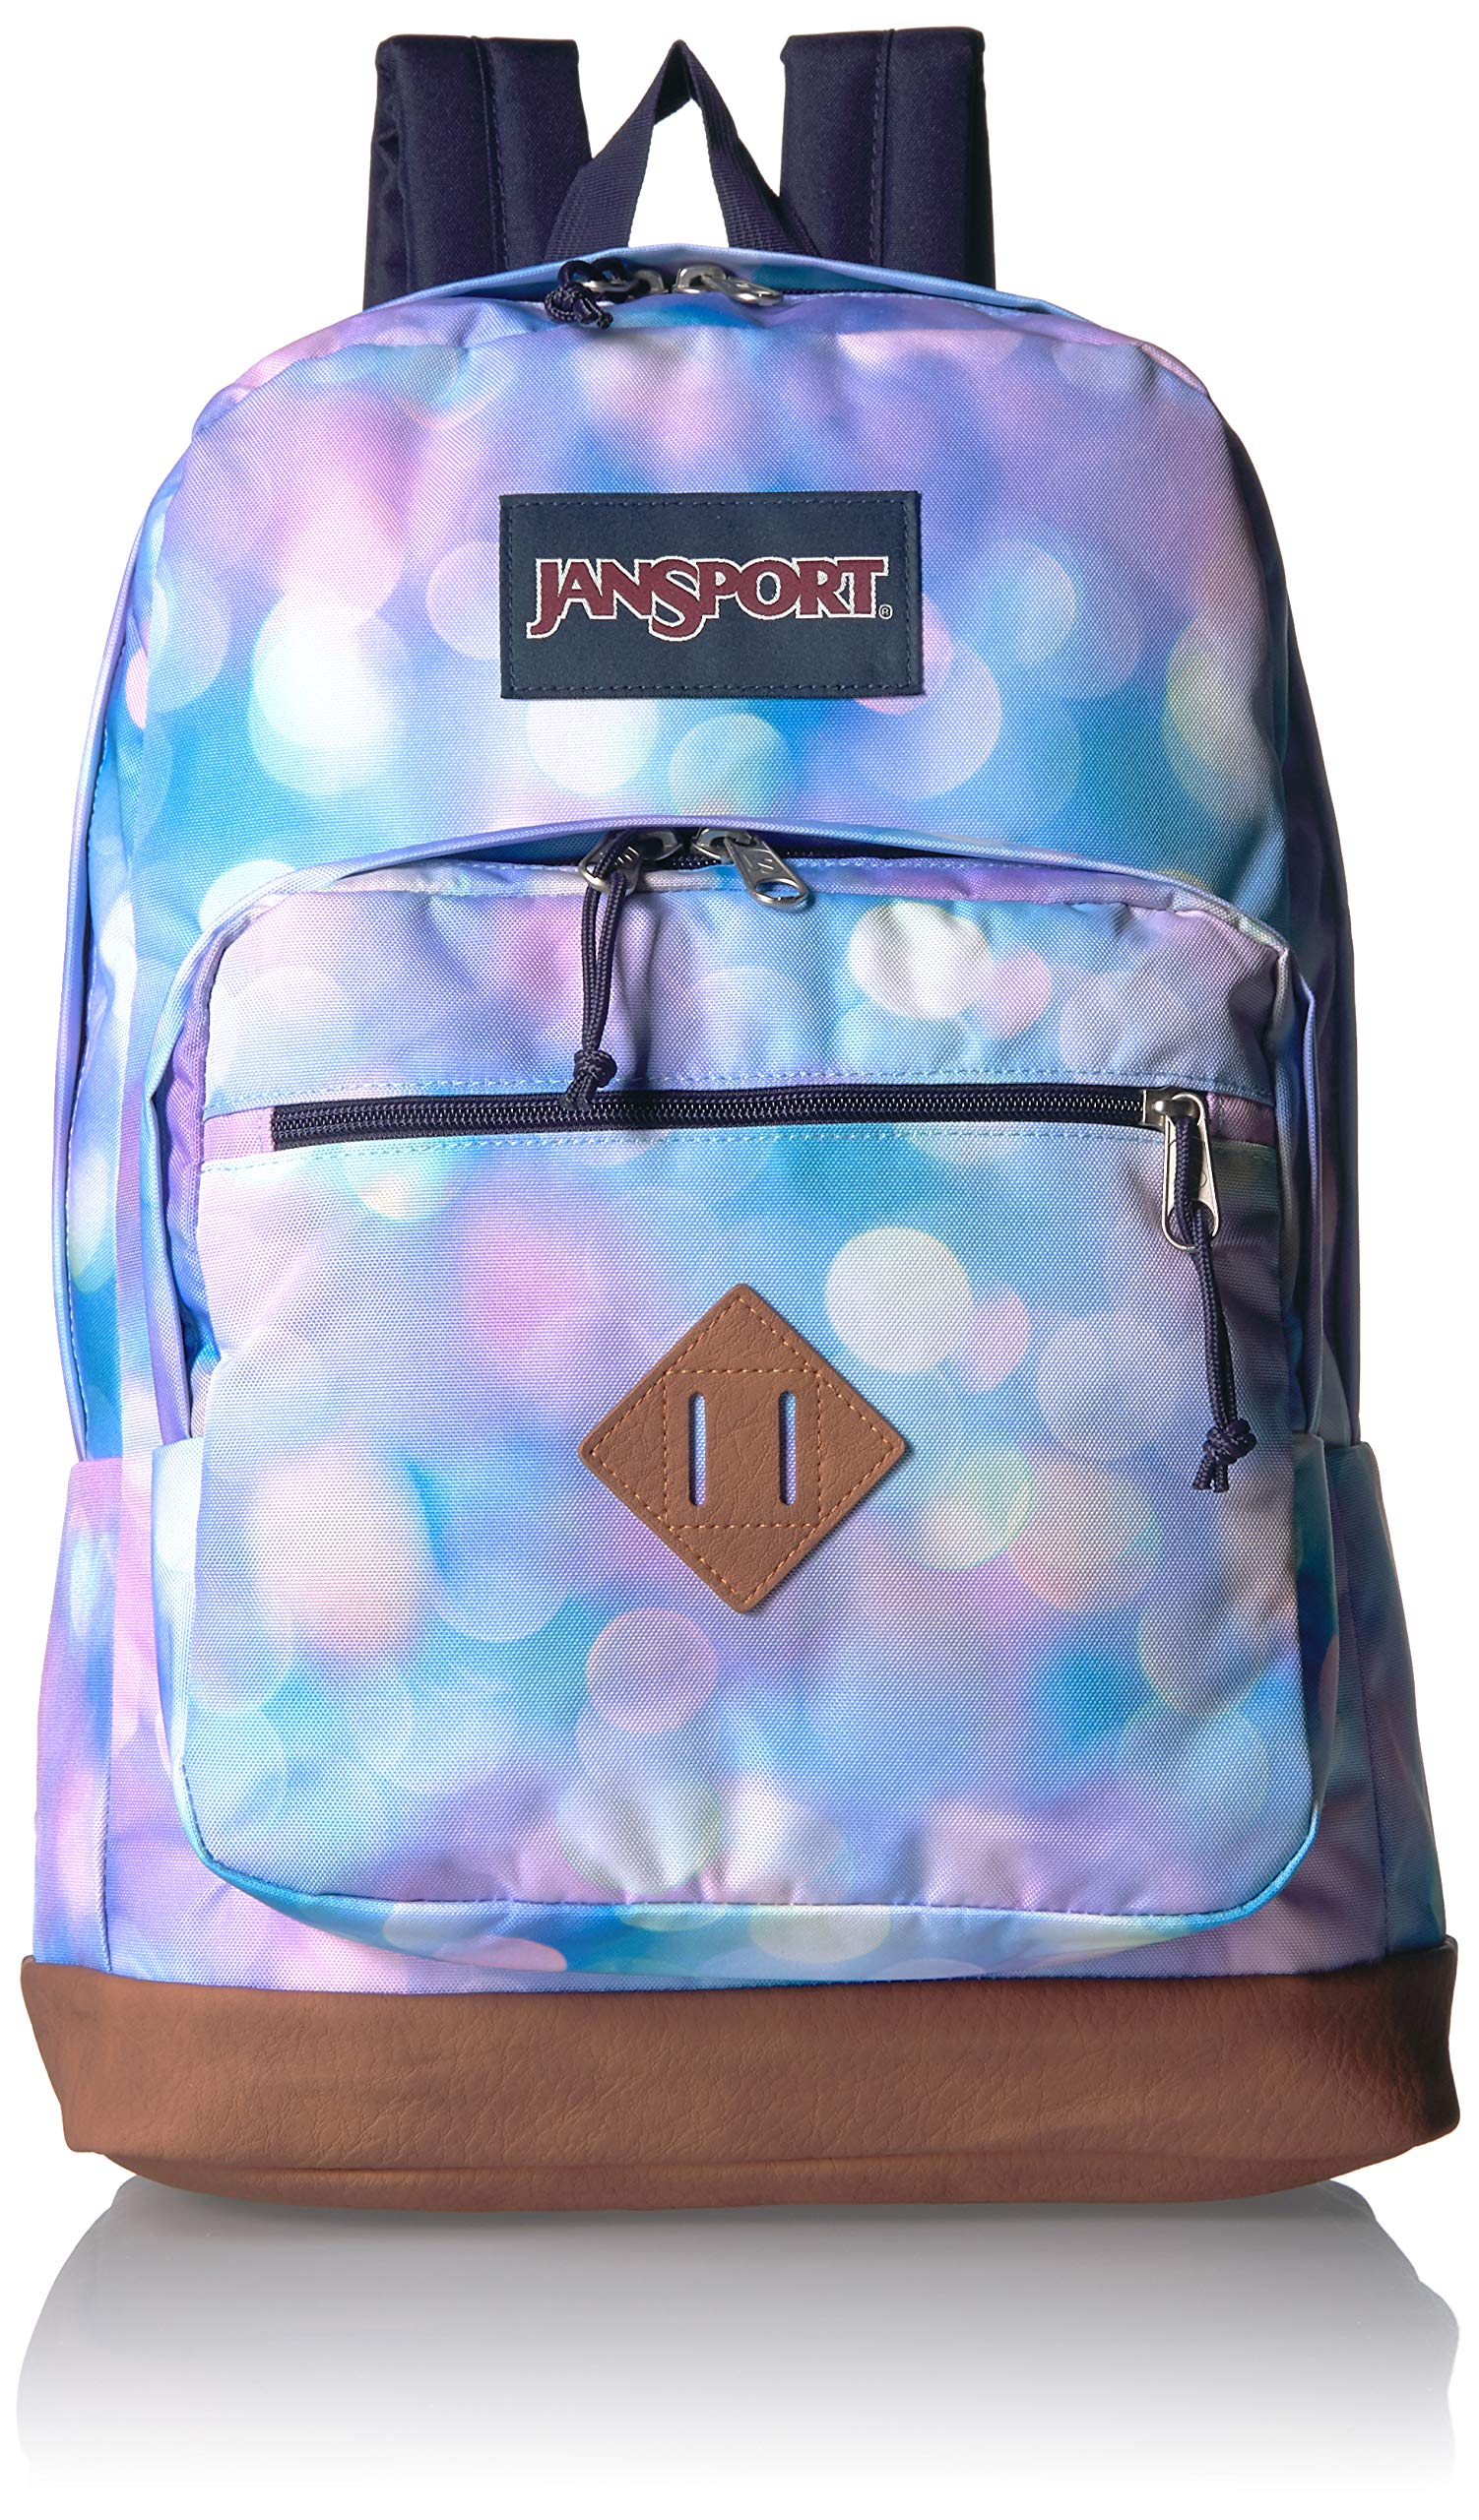 JanSport City View Backpack - 15-inch Laptop School Pack, City Lights by JanSport